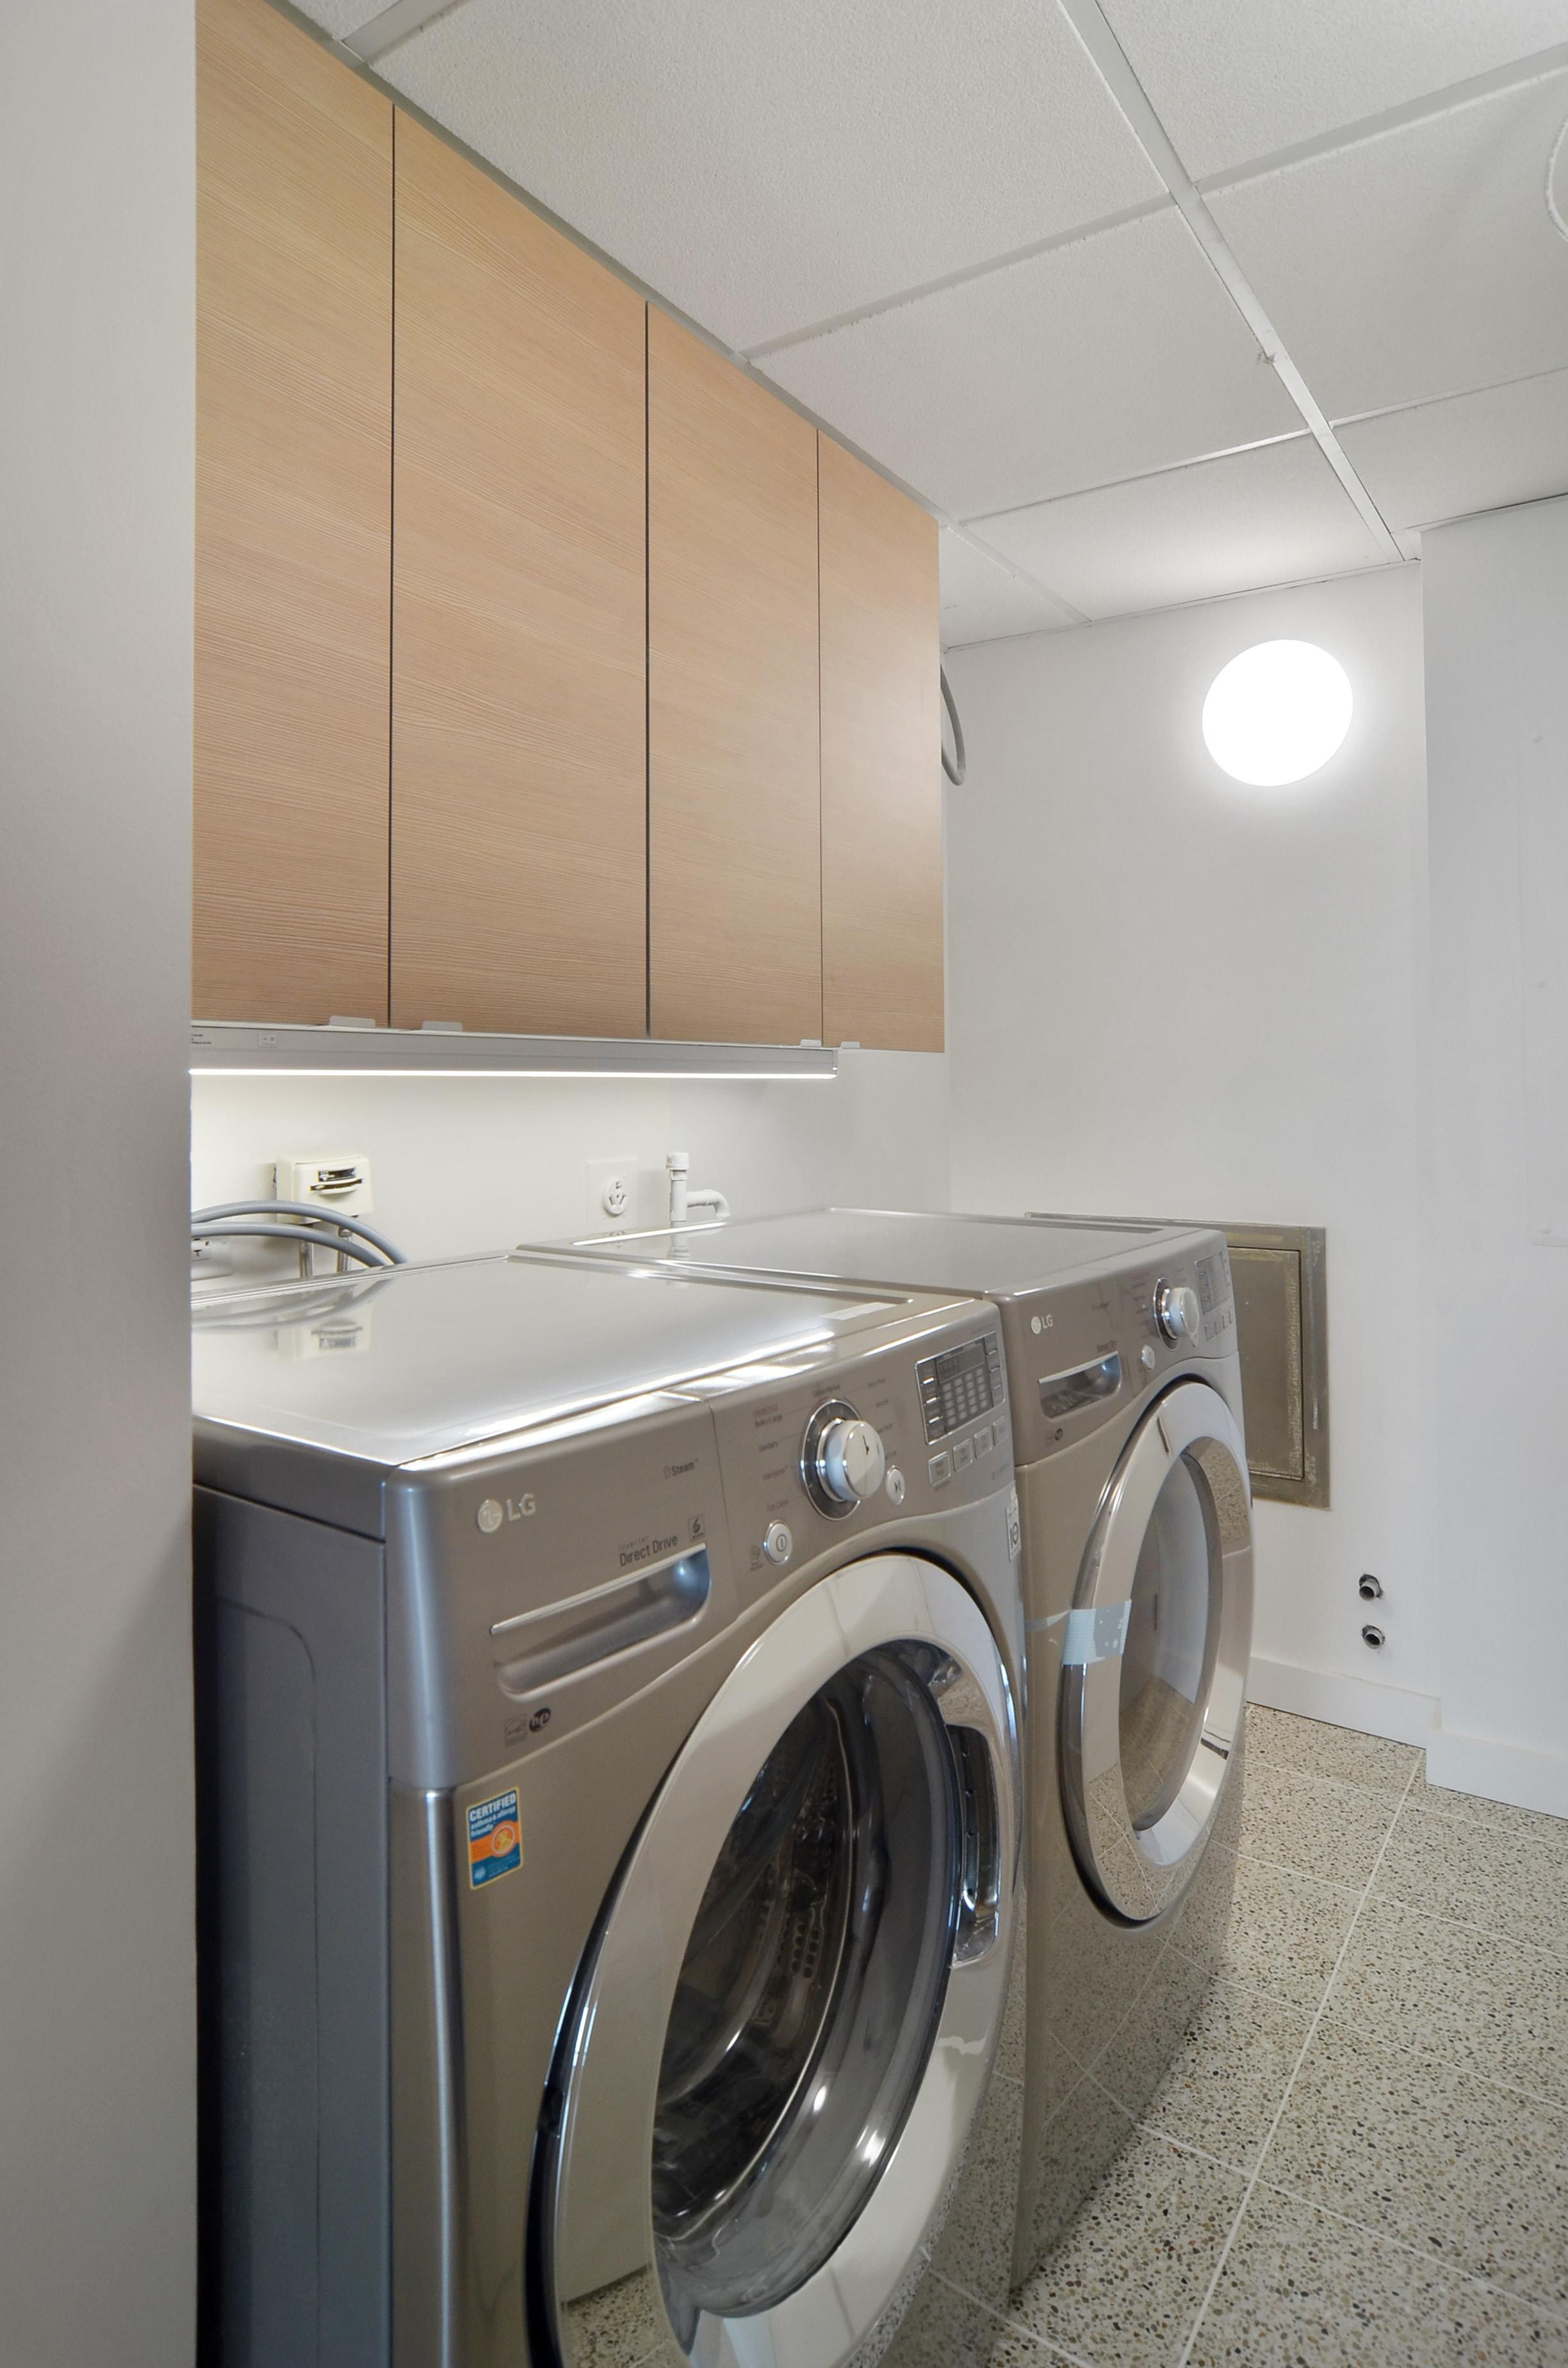 Gold Coast high rise condo laundry